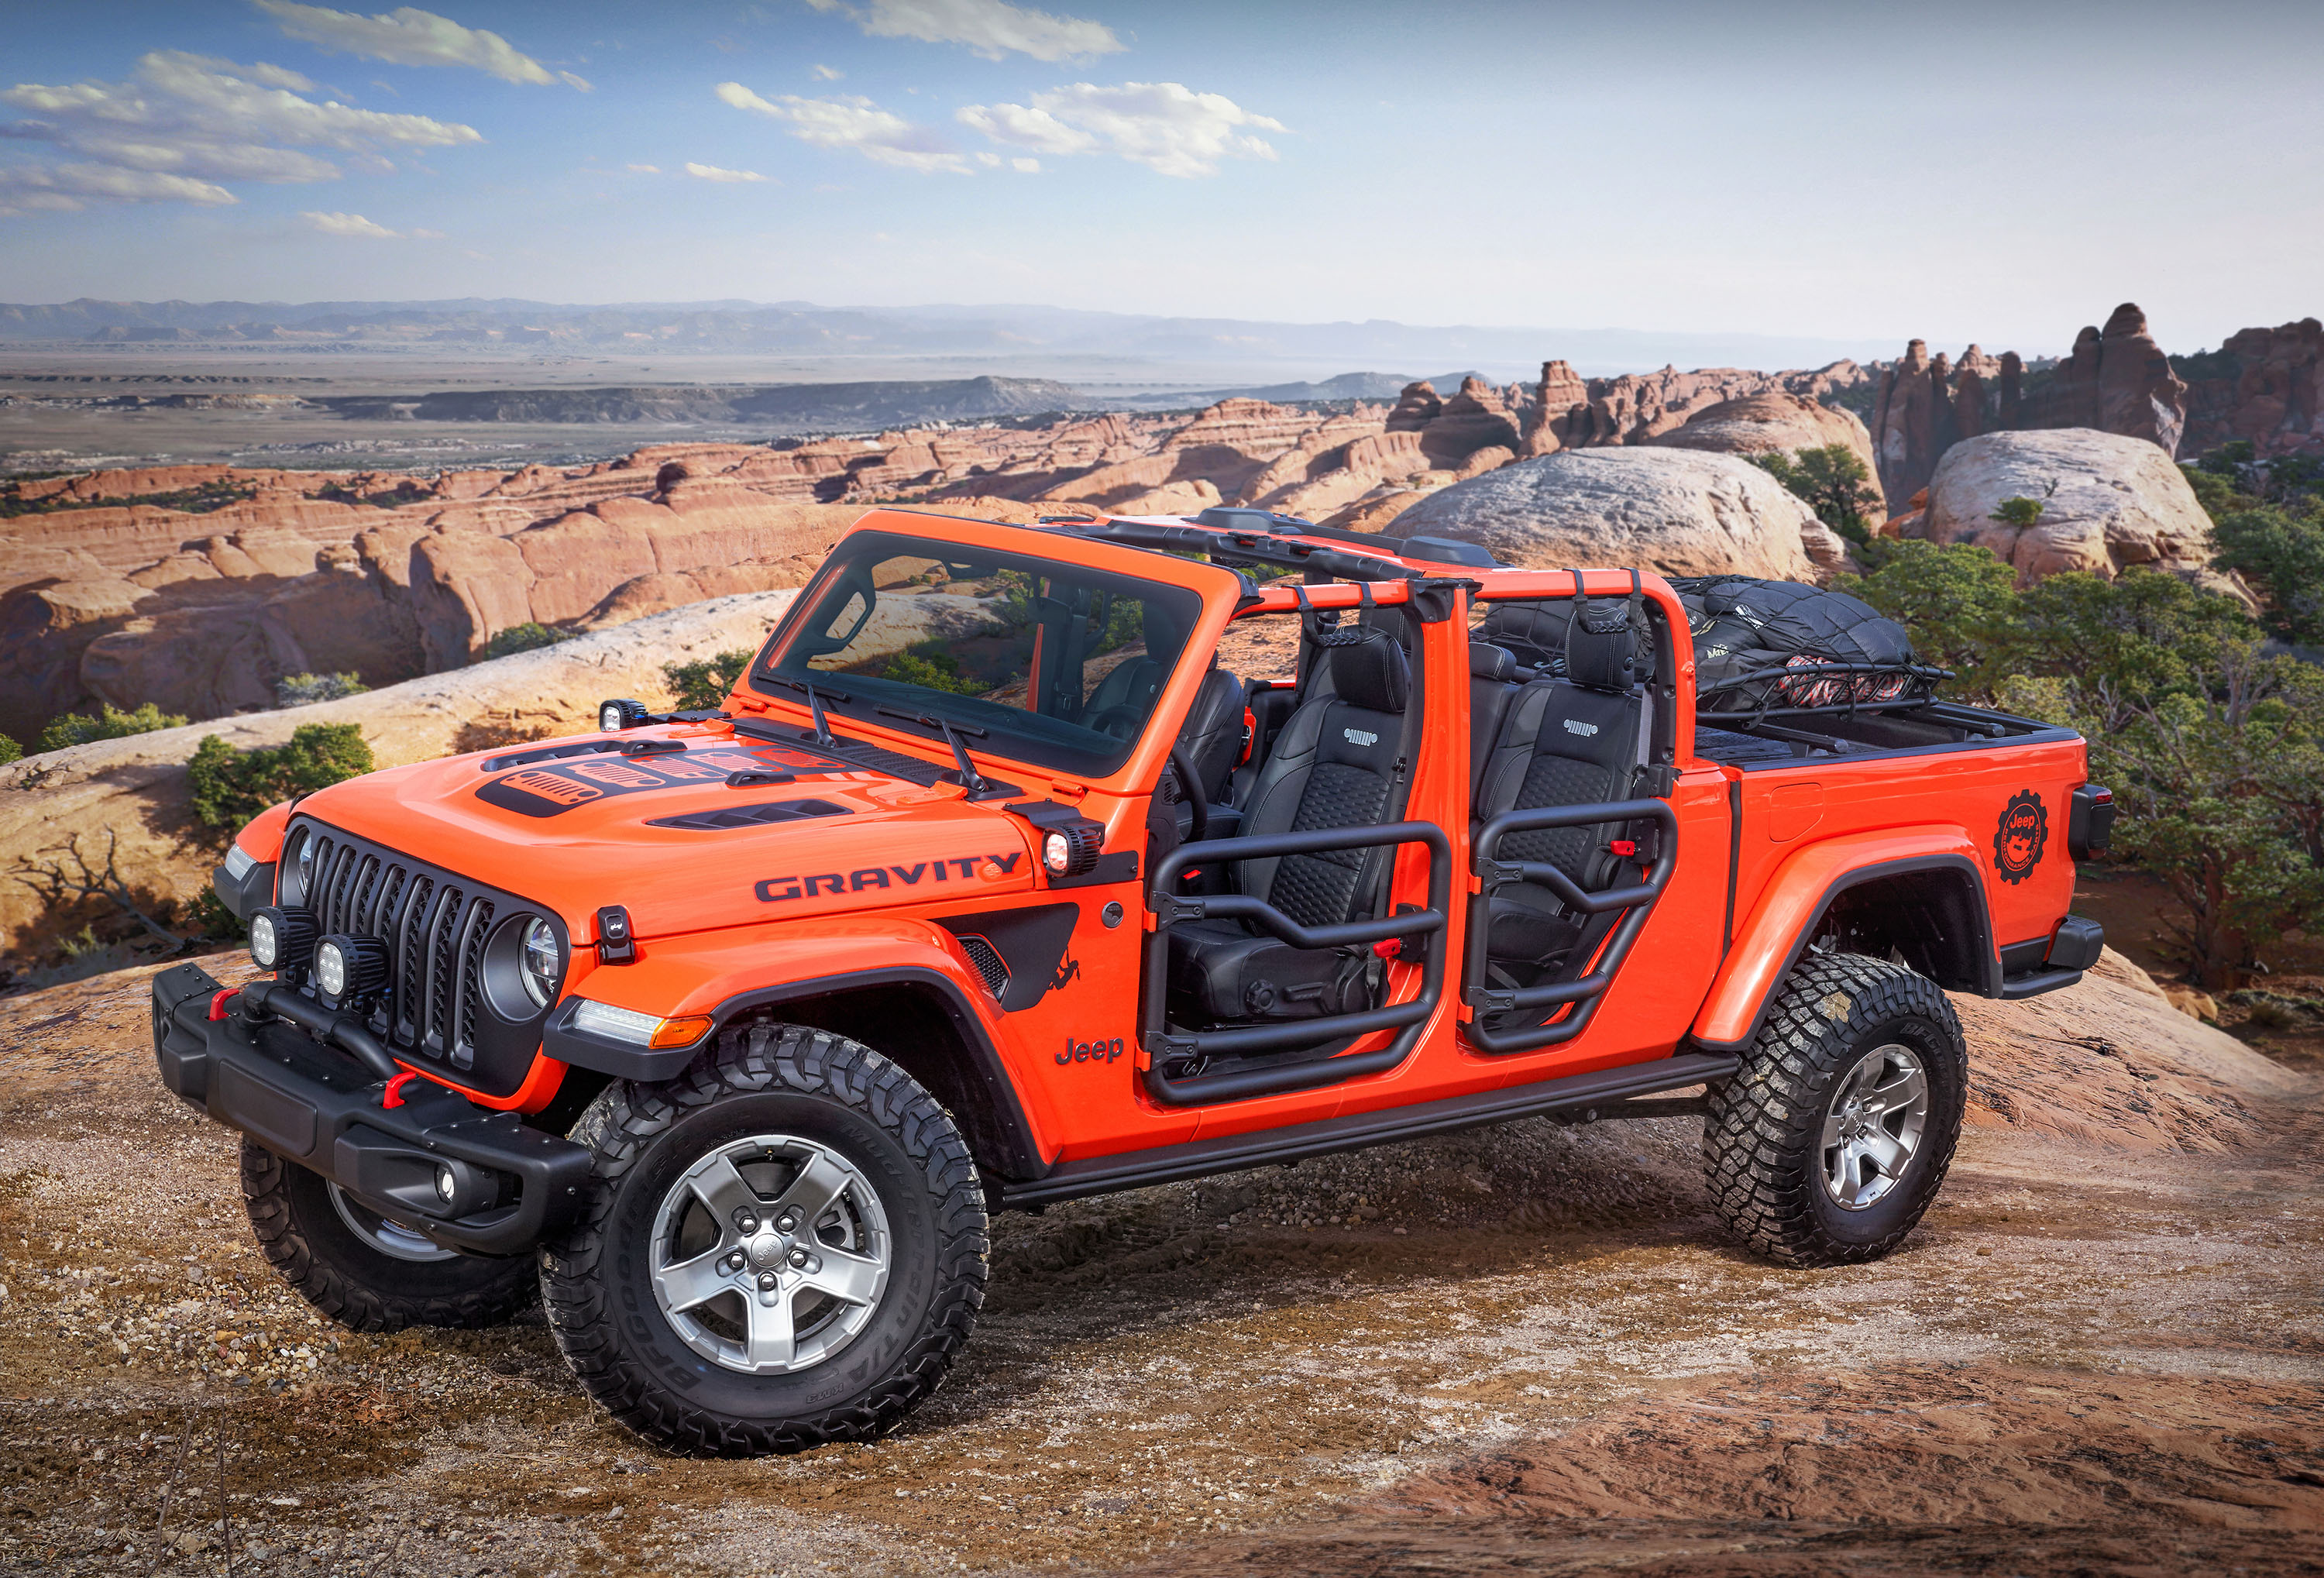 2019 Moab Easter Jeep Safari